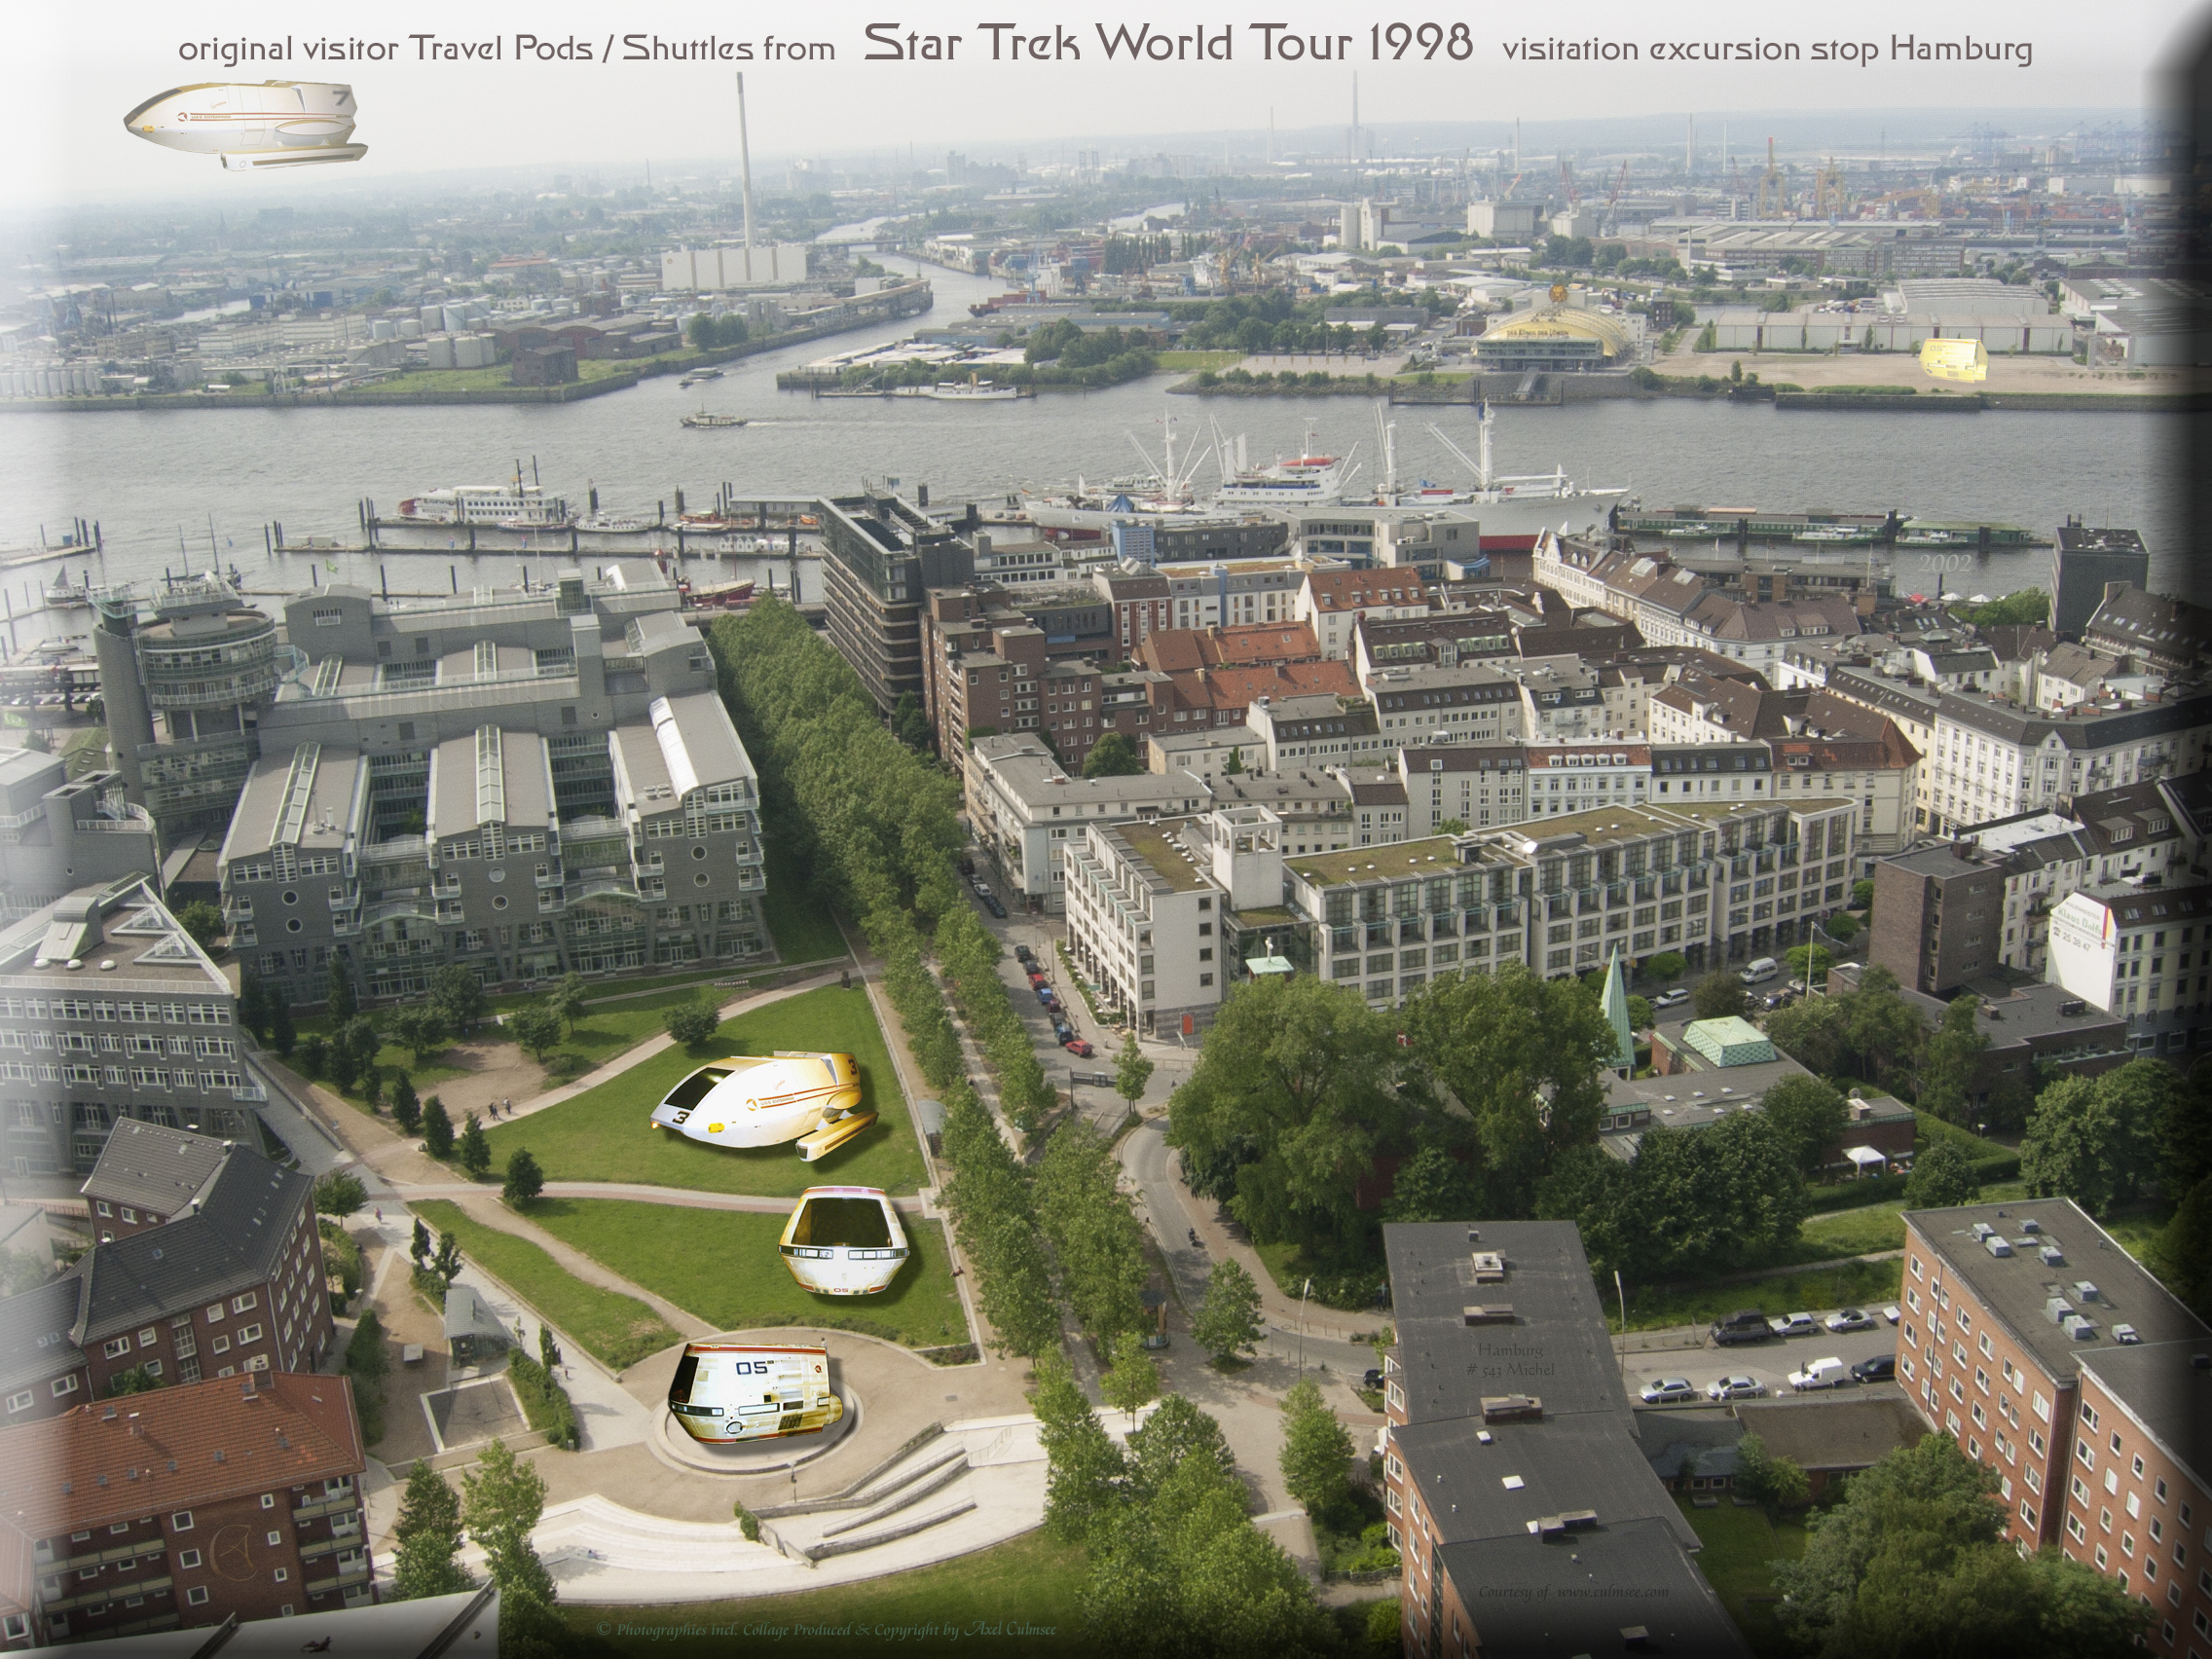 Shuttles Travel Pods timeline STWT 1998 Federation Science European Tour Hamburg harbour seen from St. Michael's Church